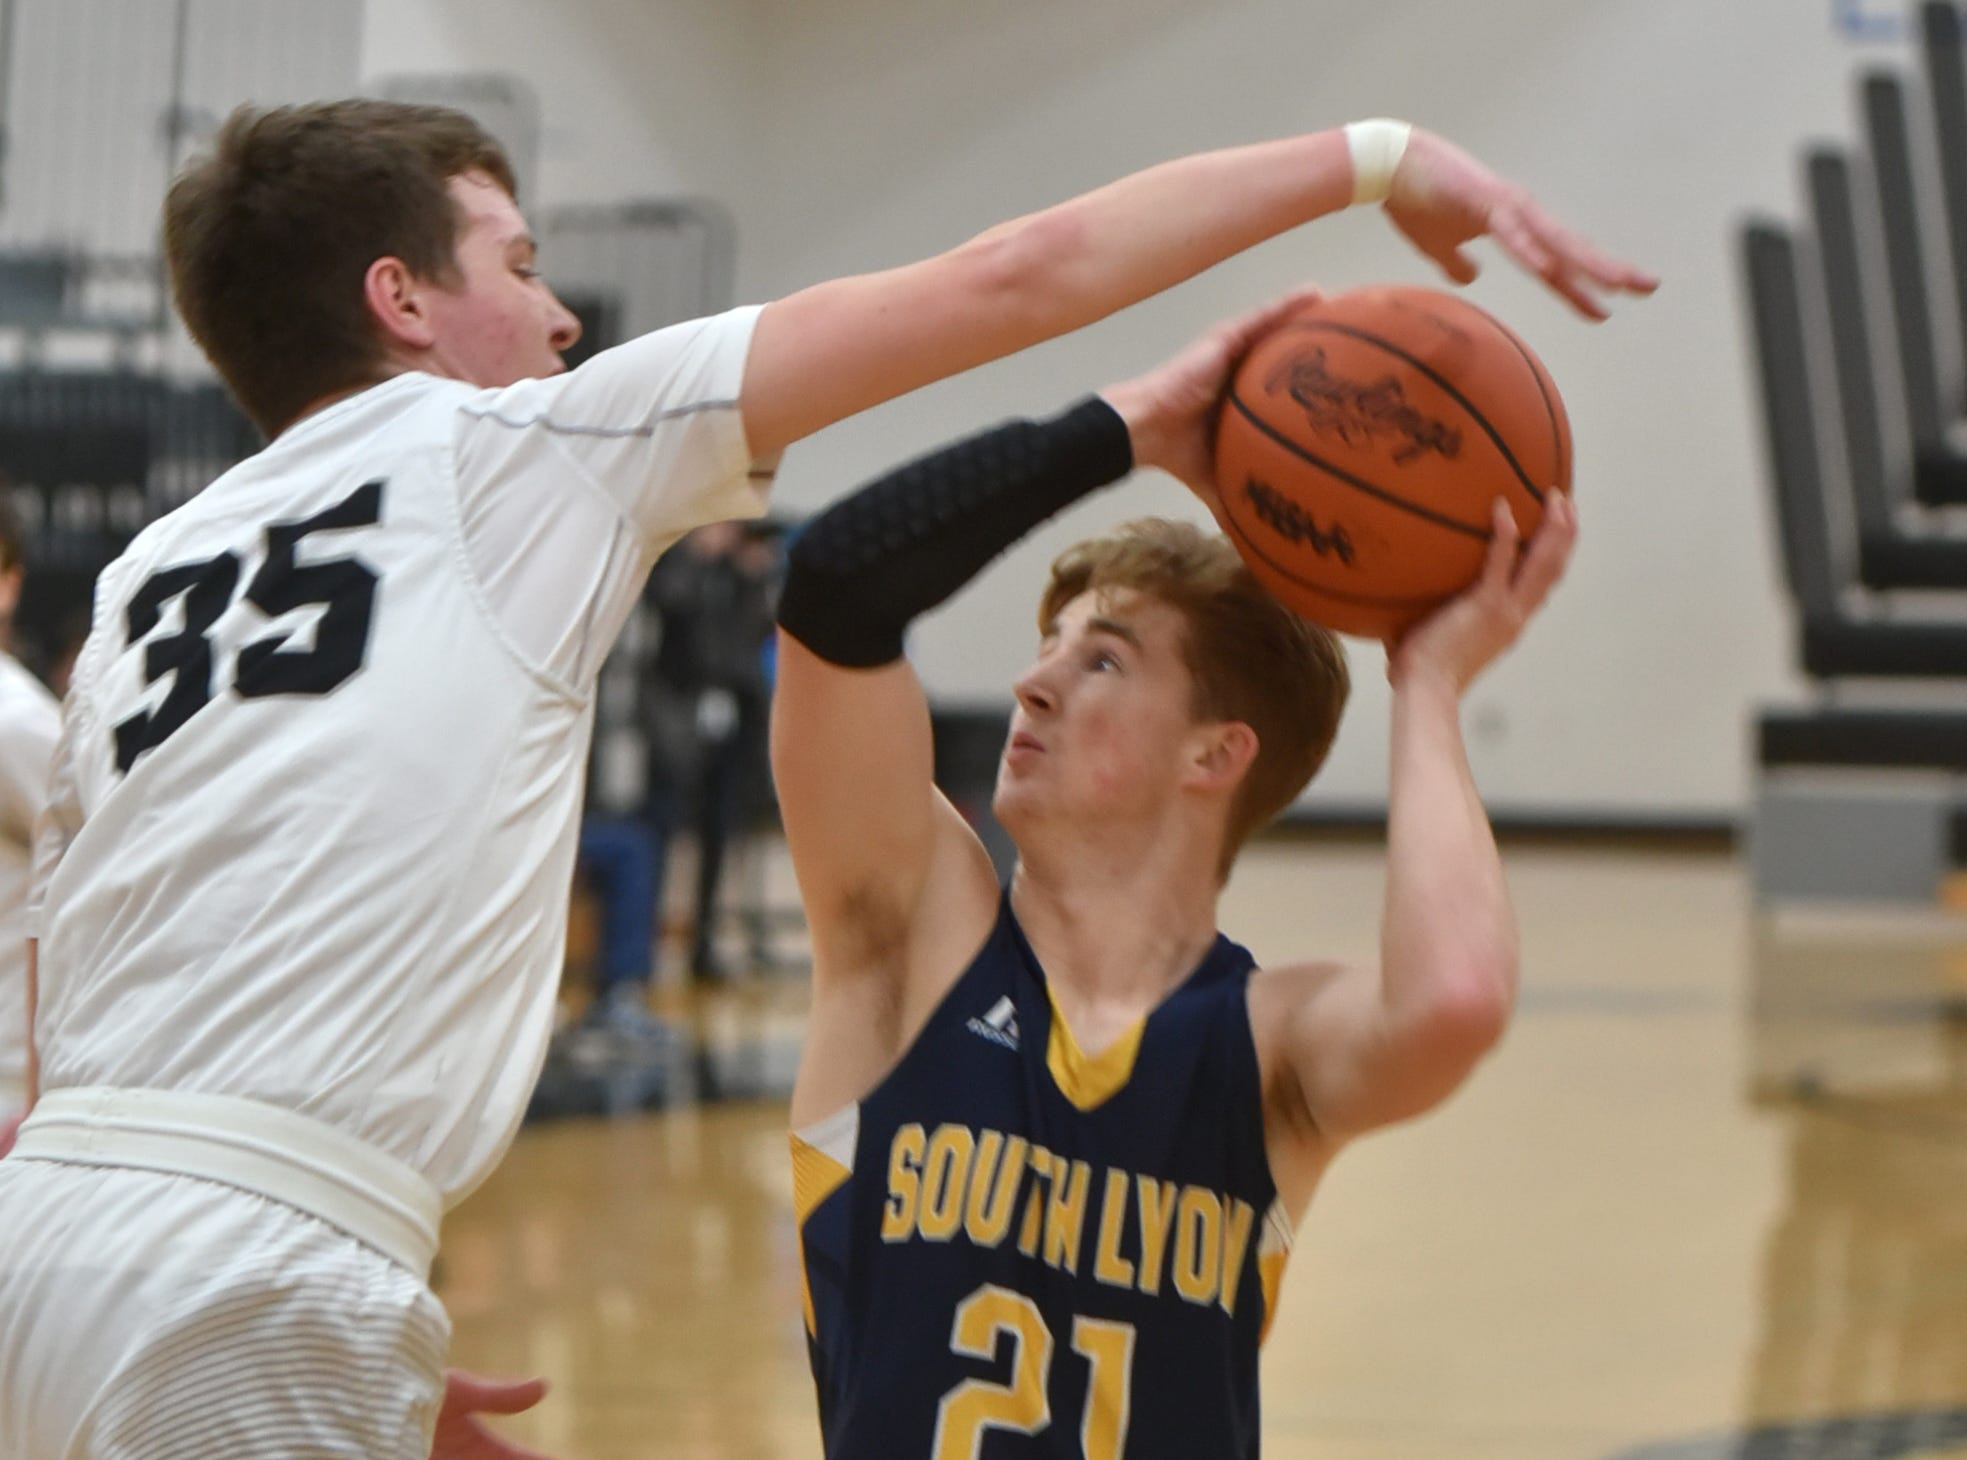 South Lyon East's Adam Trent, left, tries to block a shot by South Lyon's Connor Fracassi.